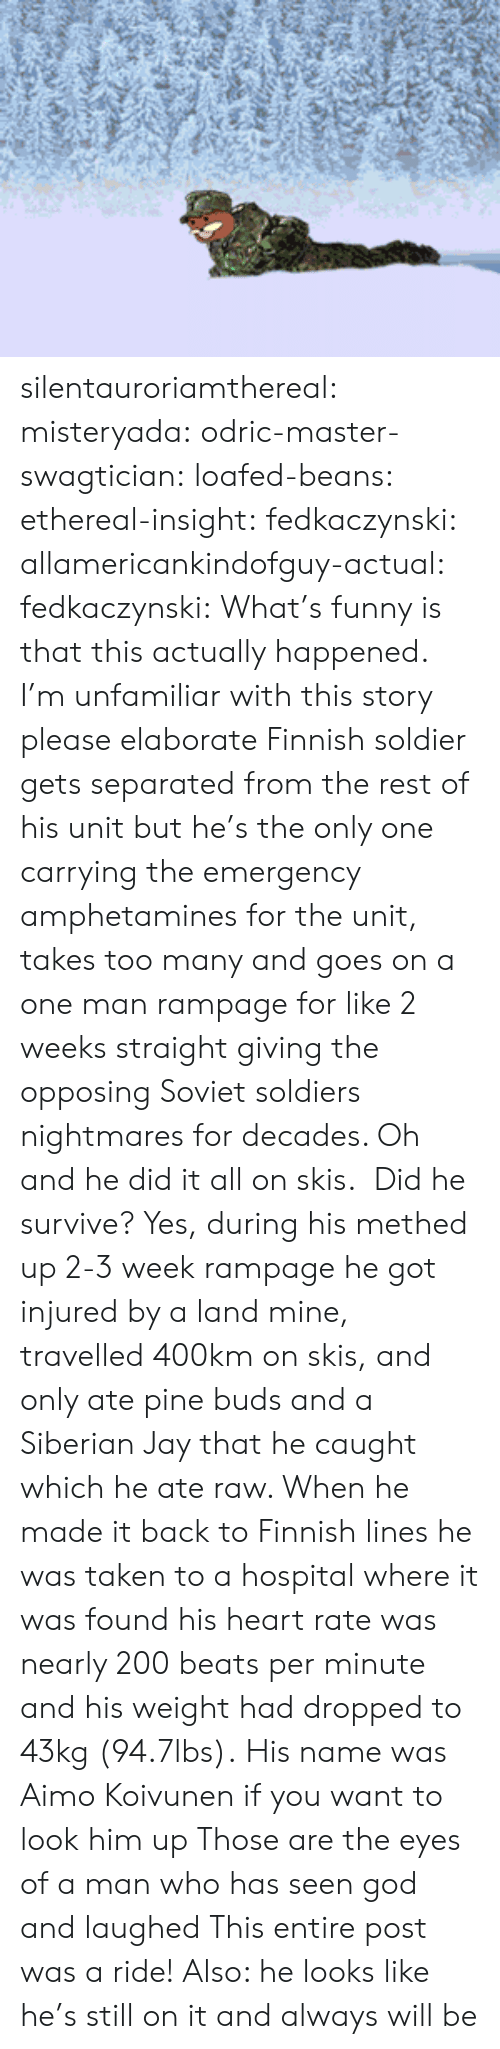 Methed: silentauroriamthereal:  misteryada:  odric-master-swagtician:  loafed-beans:  ethereal-insight:  fedkaczynski:  allamericankindofguy-actual:  fedkaczynski:  What's funny is that this actually happened.  I'm unfamiliar with this story please elaborate   Finnish soldier gets separated from the rest of his unit but he's the only one carrying the emergency amphetamines for the unit, takes too many and goes on a one man rampage for like 2 weeks straight giving the opposing Soviet soldiers nightmares for decades. Oh and he did it all on skis.   Did he survive?  Yes, during his methed up 2-3 week rampage he got injured by a land mine, travelled 400km on skis, and only ate pine buds and a Siberian Jay that he caught which he ate raw. When he made it back to Finnish lines he was taken to a hospital where it was found his heart rate was nearly 200 beats per minute and his weight had dropped to 43kg (94.7lbs).  His name was Aimo Koivunen if you want to look him up  Those are the eyes of a man who has seen god and laughed   This entire post was a ride! Also: he looks like he's still on it and always will be